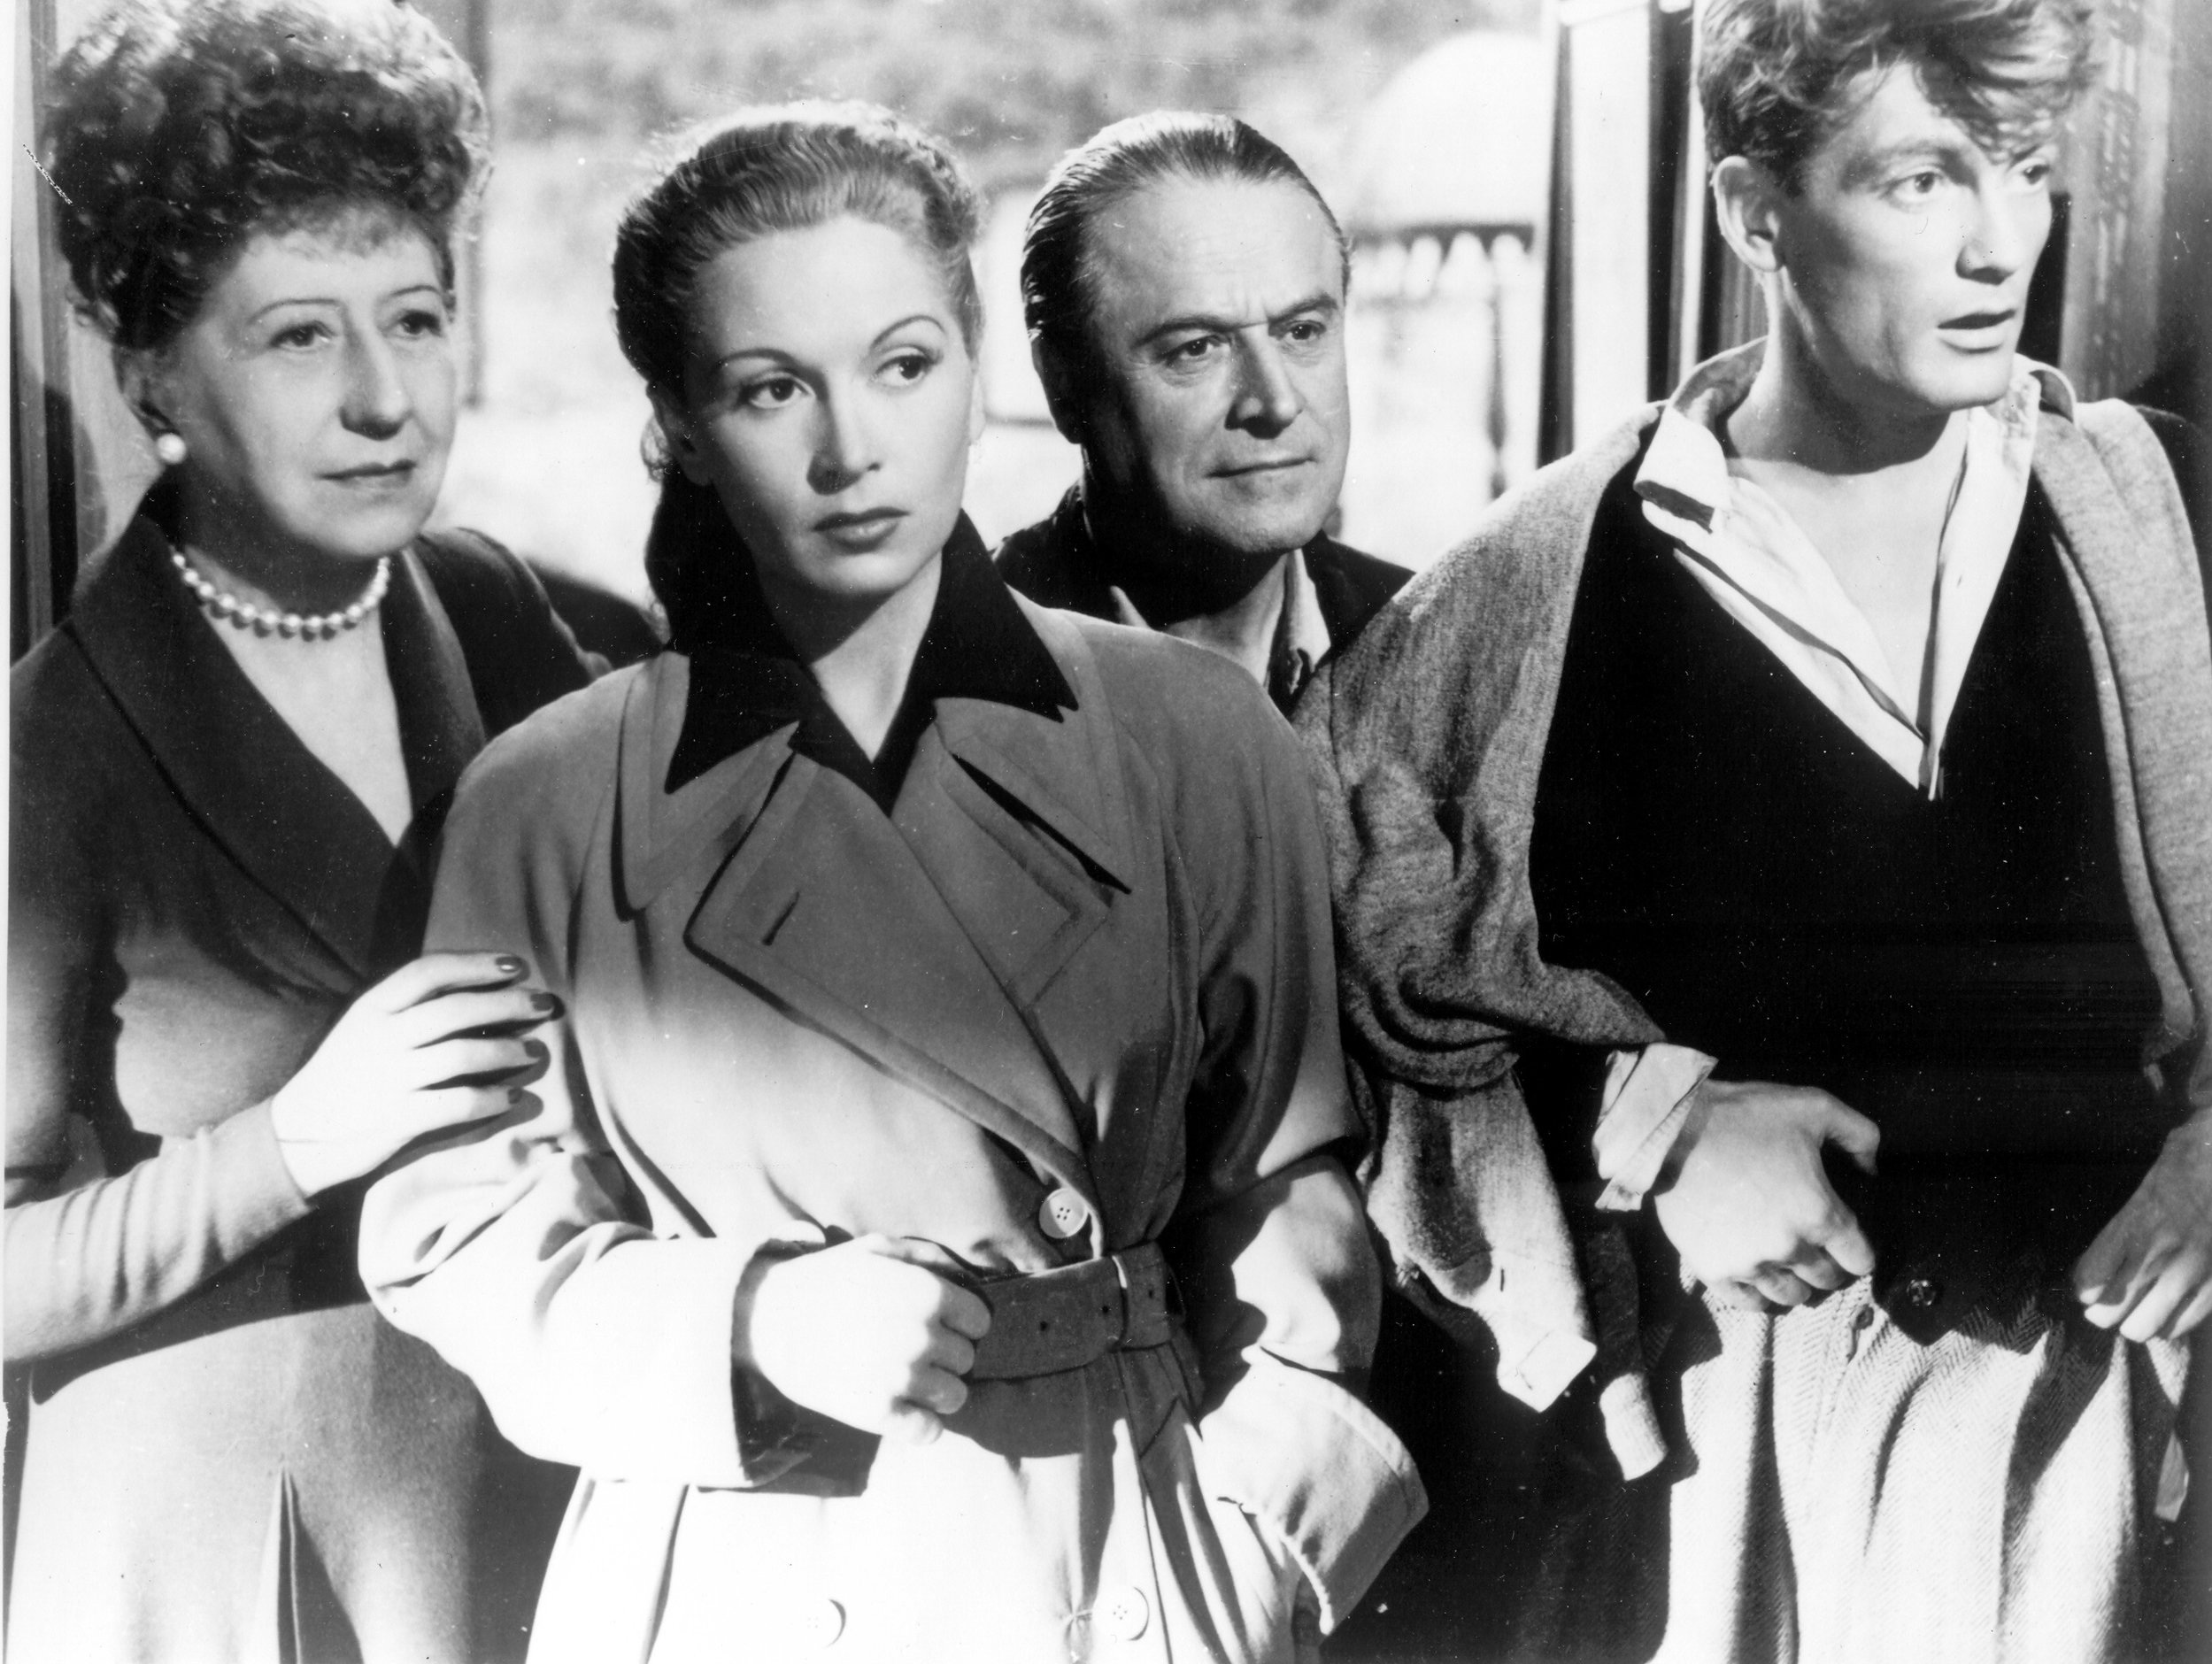 Gabrielle Dorziat as Aunt Leo, Josette Day as Madeleine, Marcel André as Georges, and Jean Marais as Michel. Photo courtesy of Photofest.